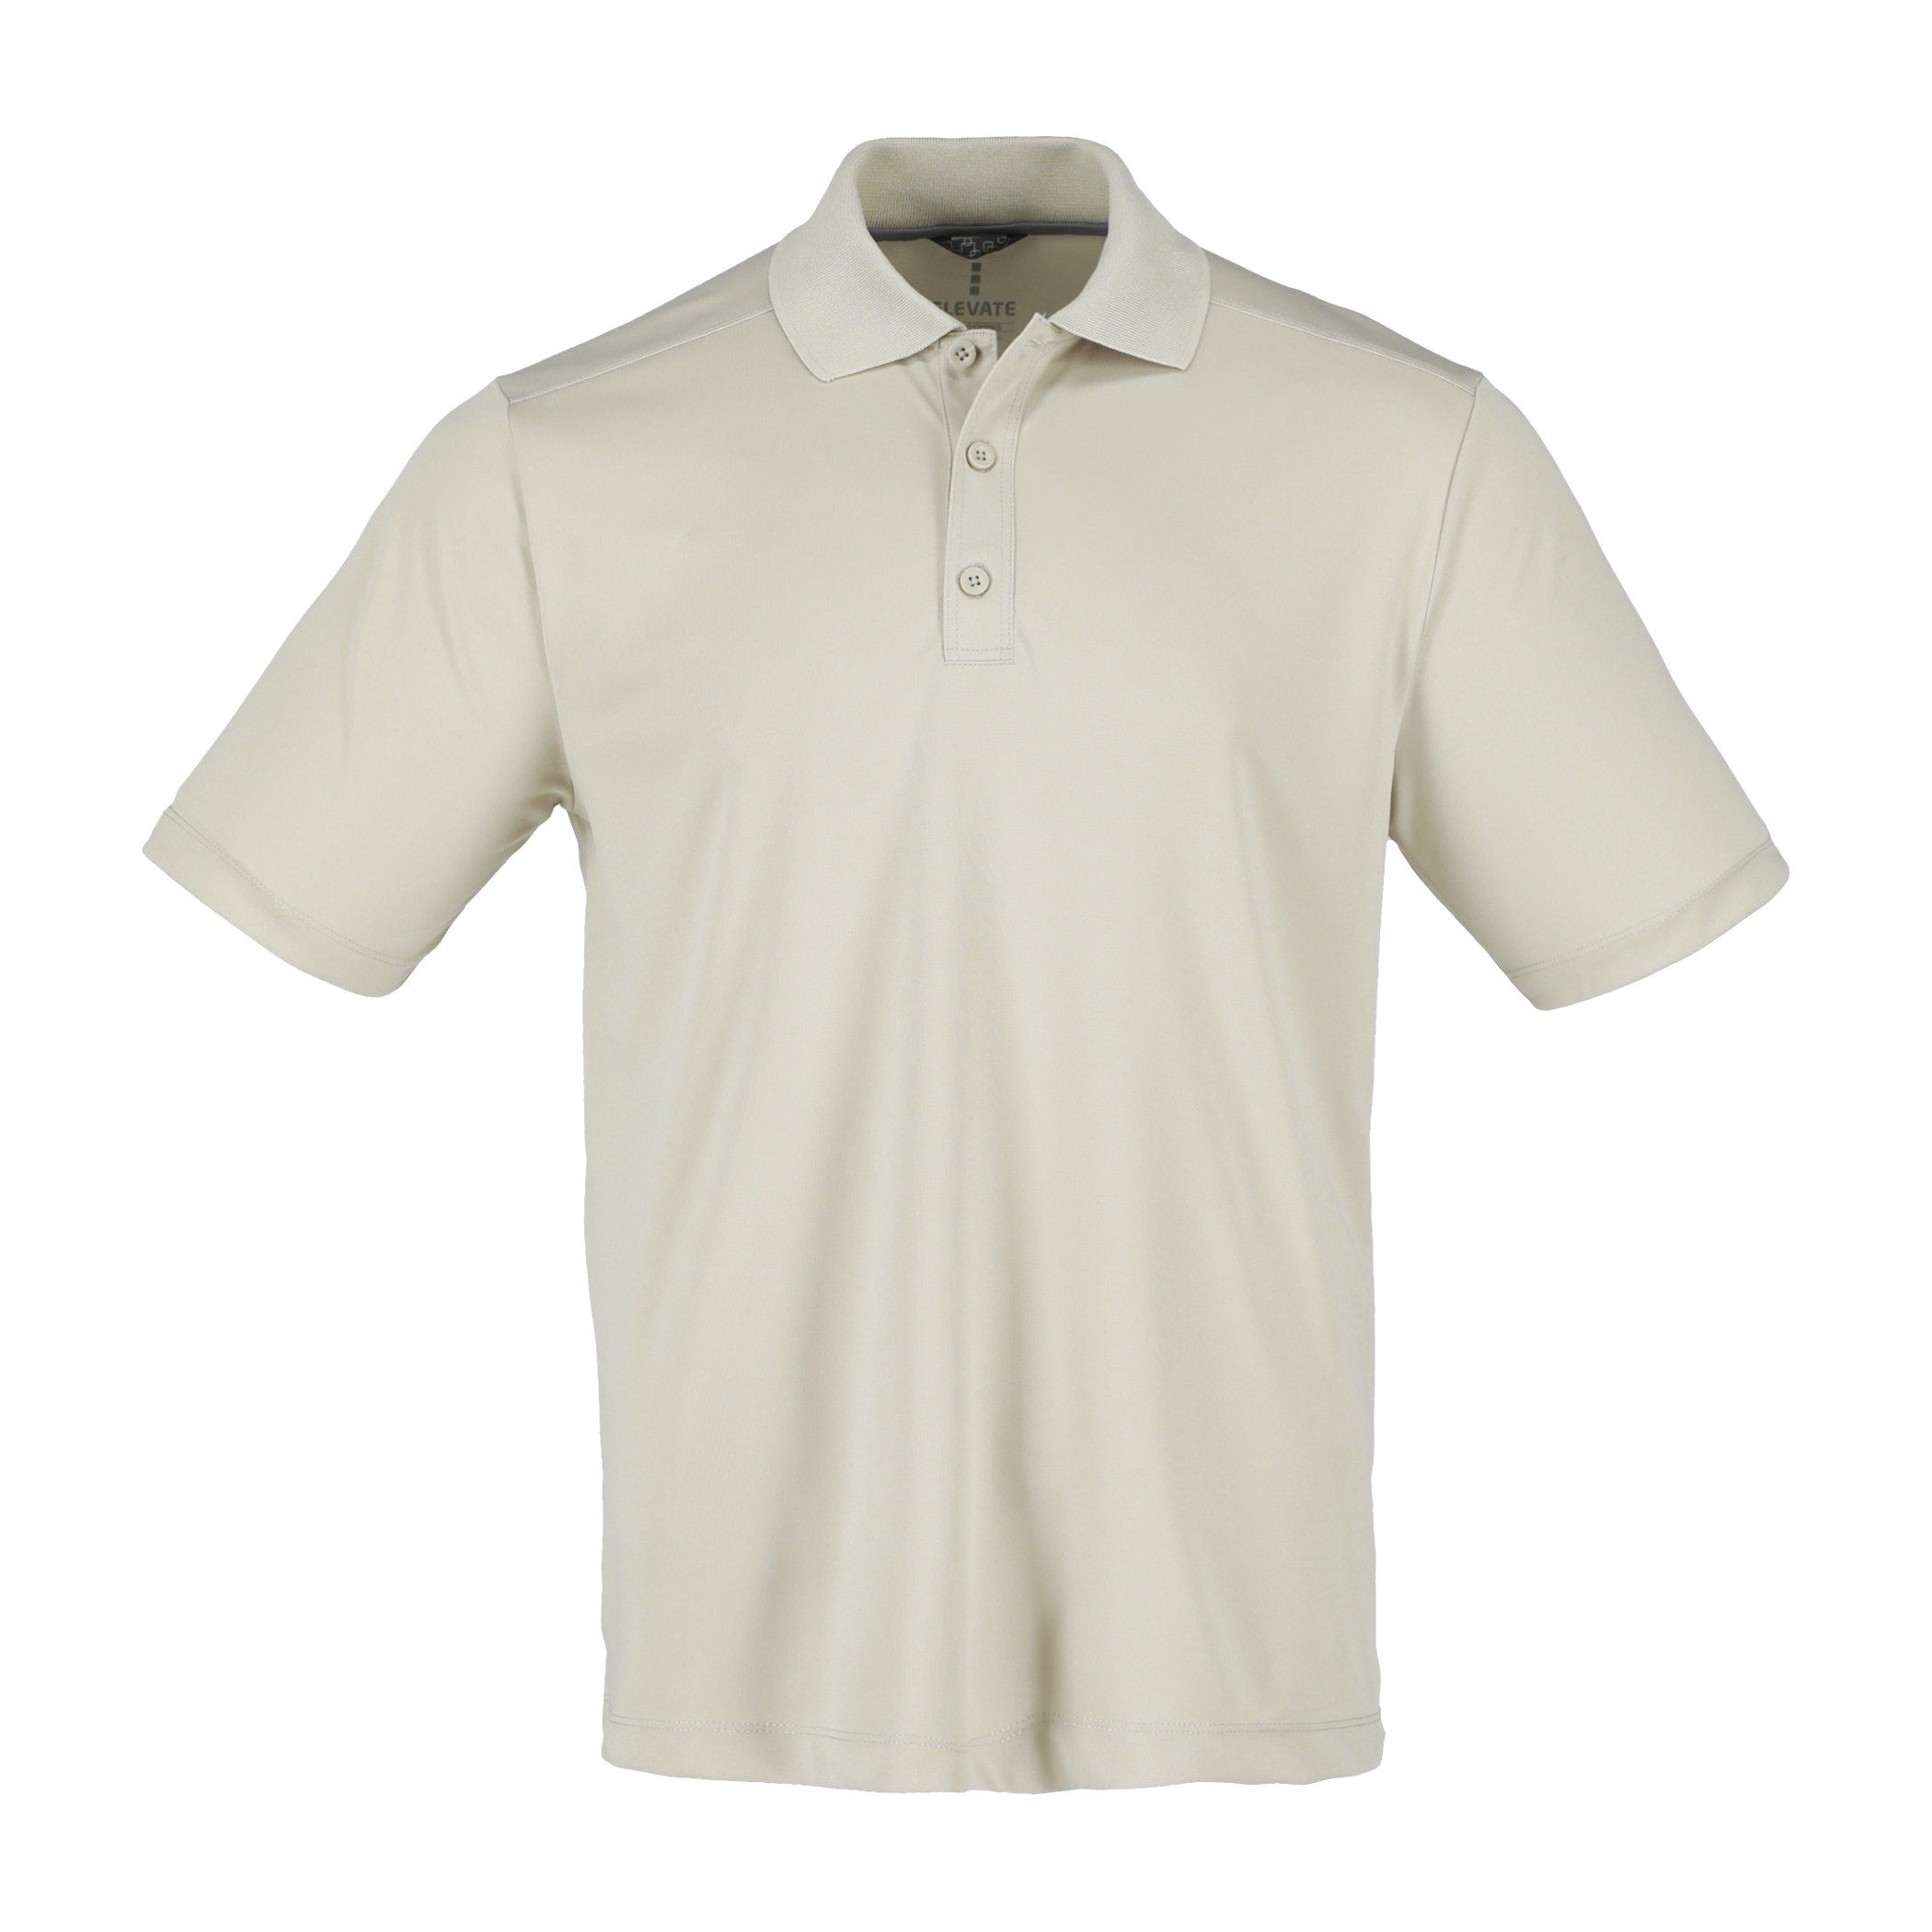 Dade Short Sleeve Men's Polo Shirt, #16398 - Embroidered